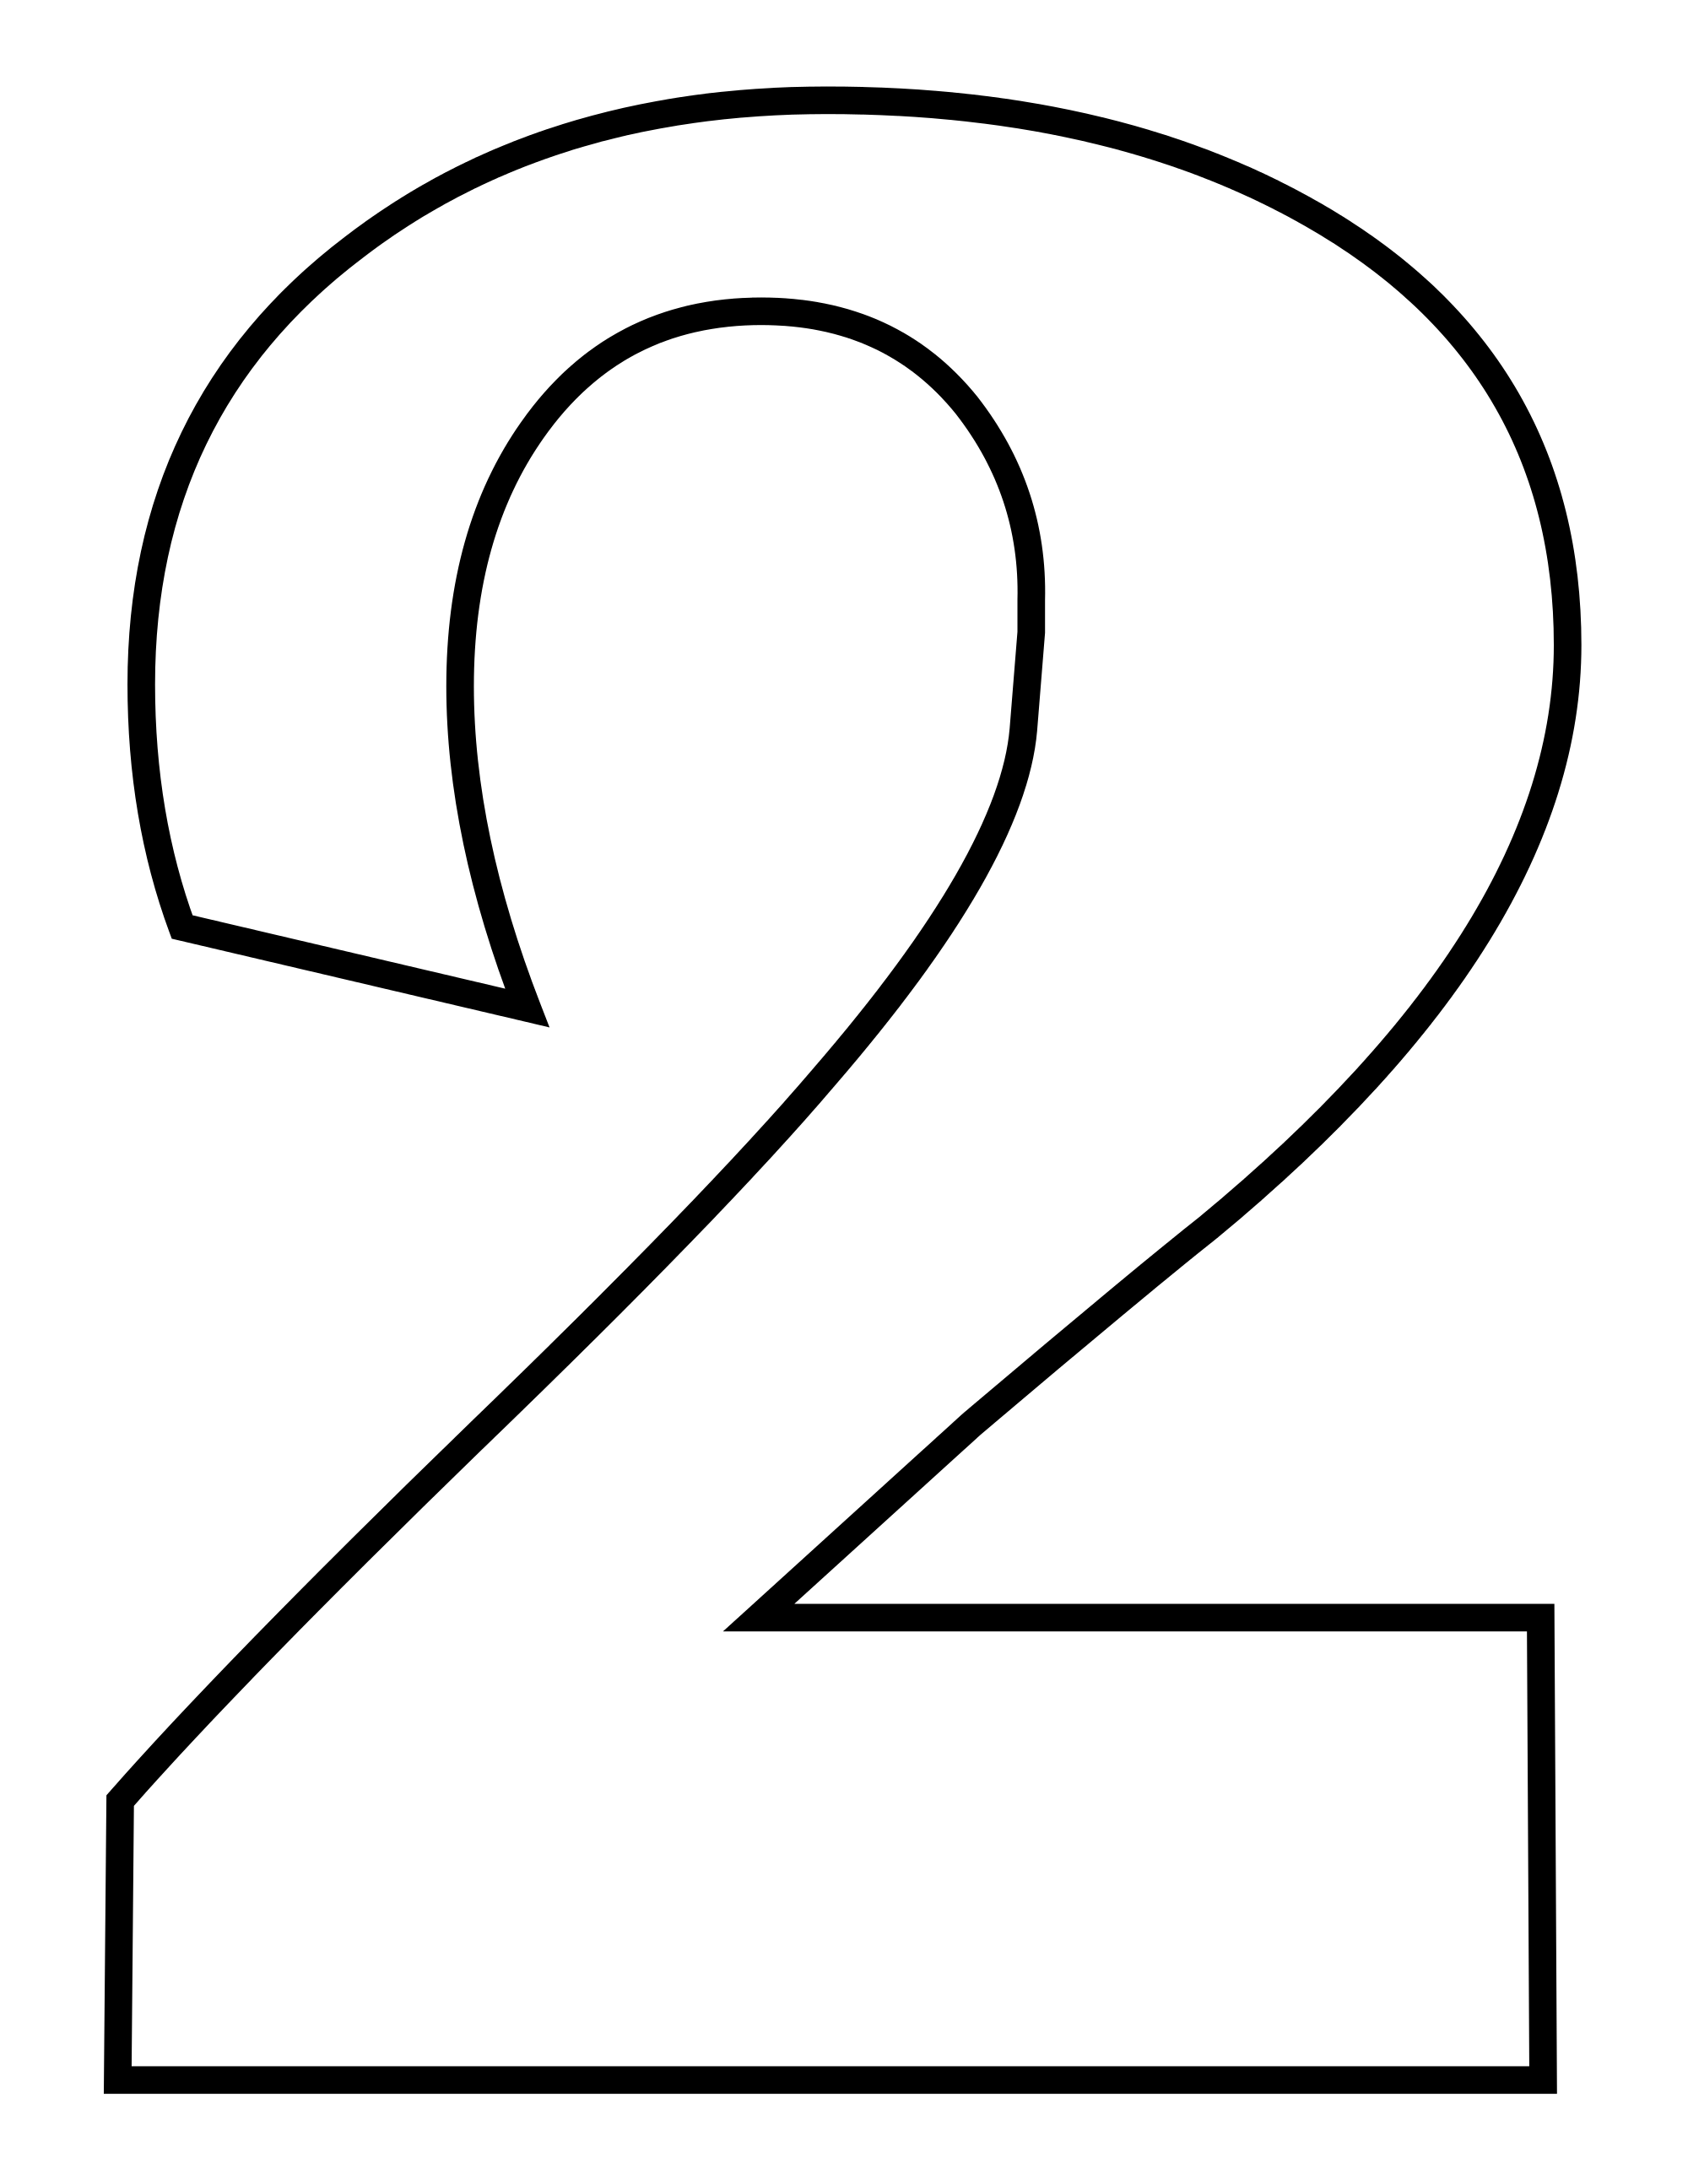 Numbers for drawing at. Number 1 clipart black and white